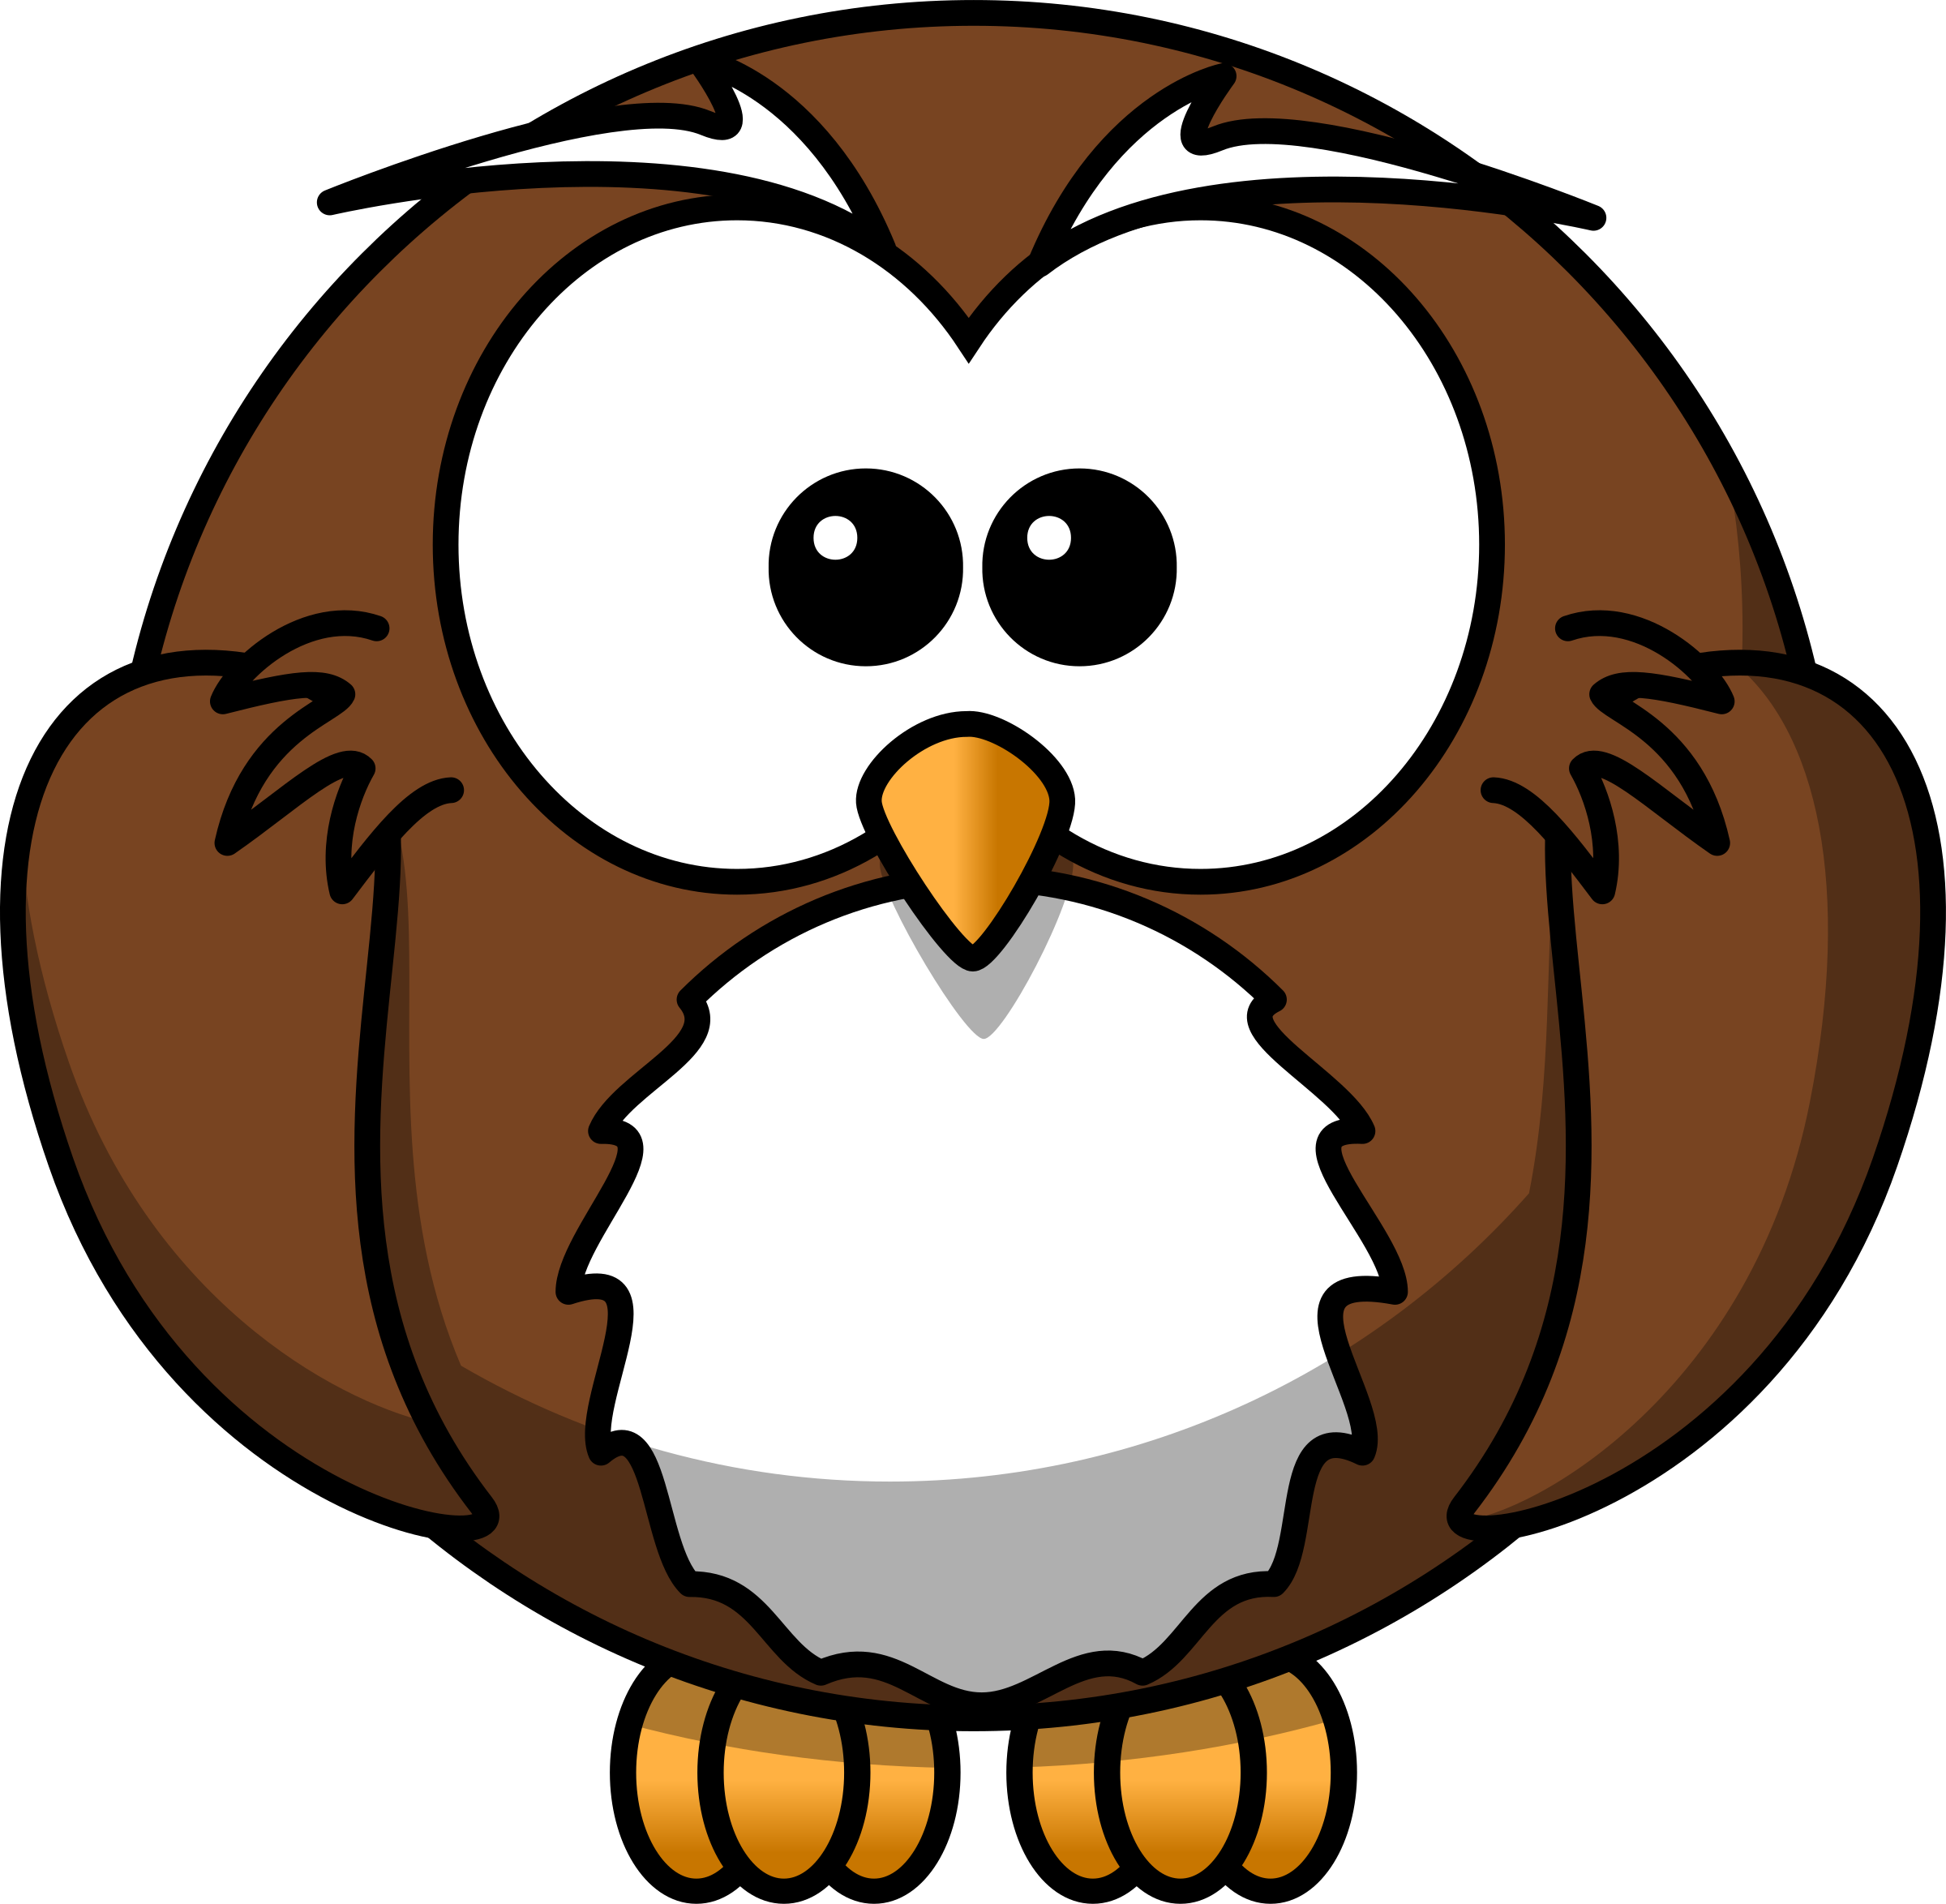 Owl big image png. Professional clipart cartoon